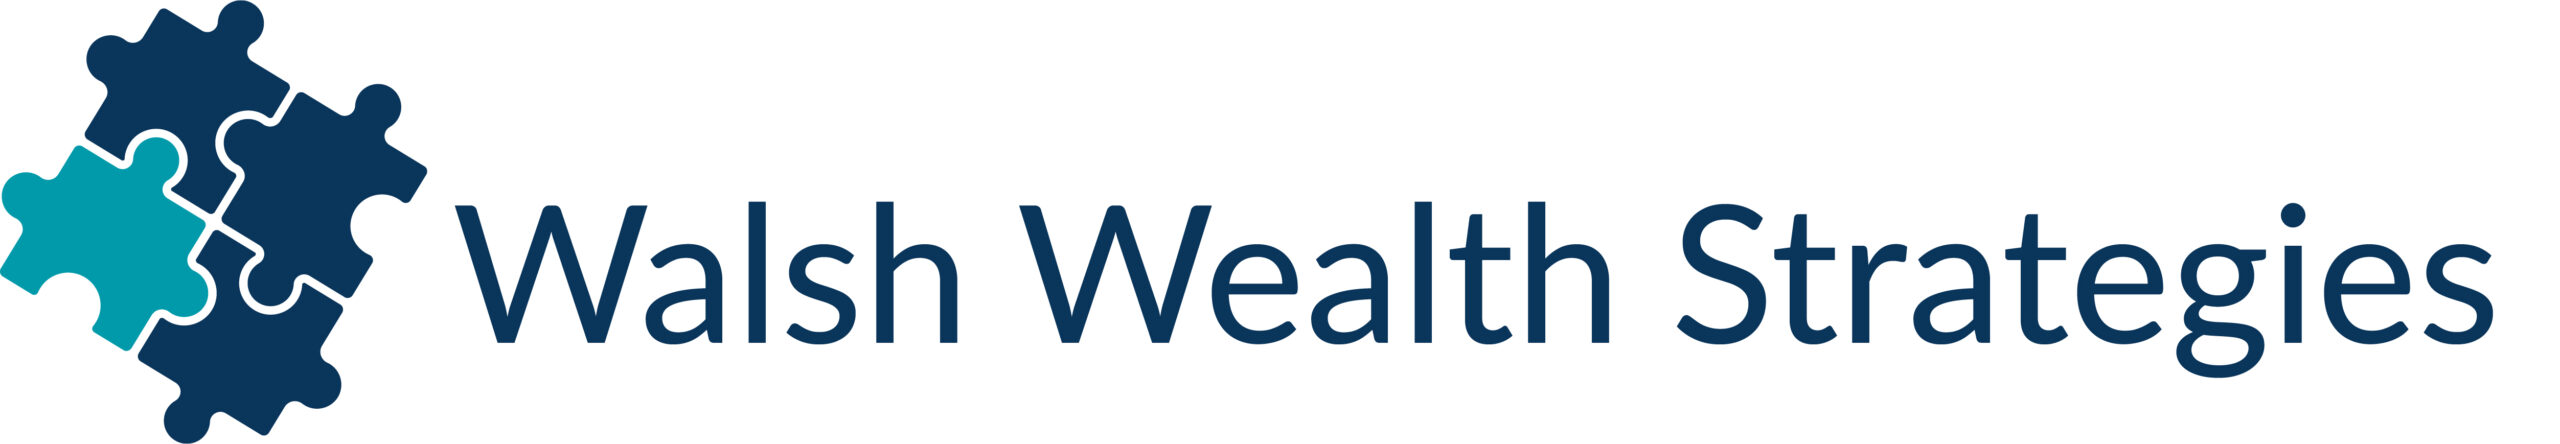 Walsh Wealth Strategies